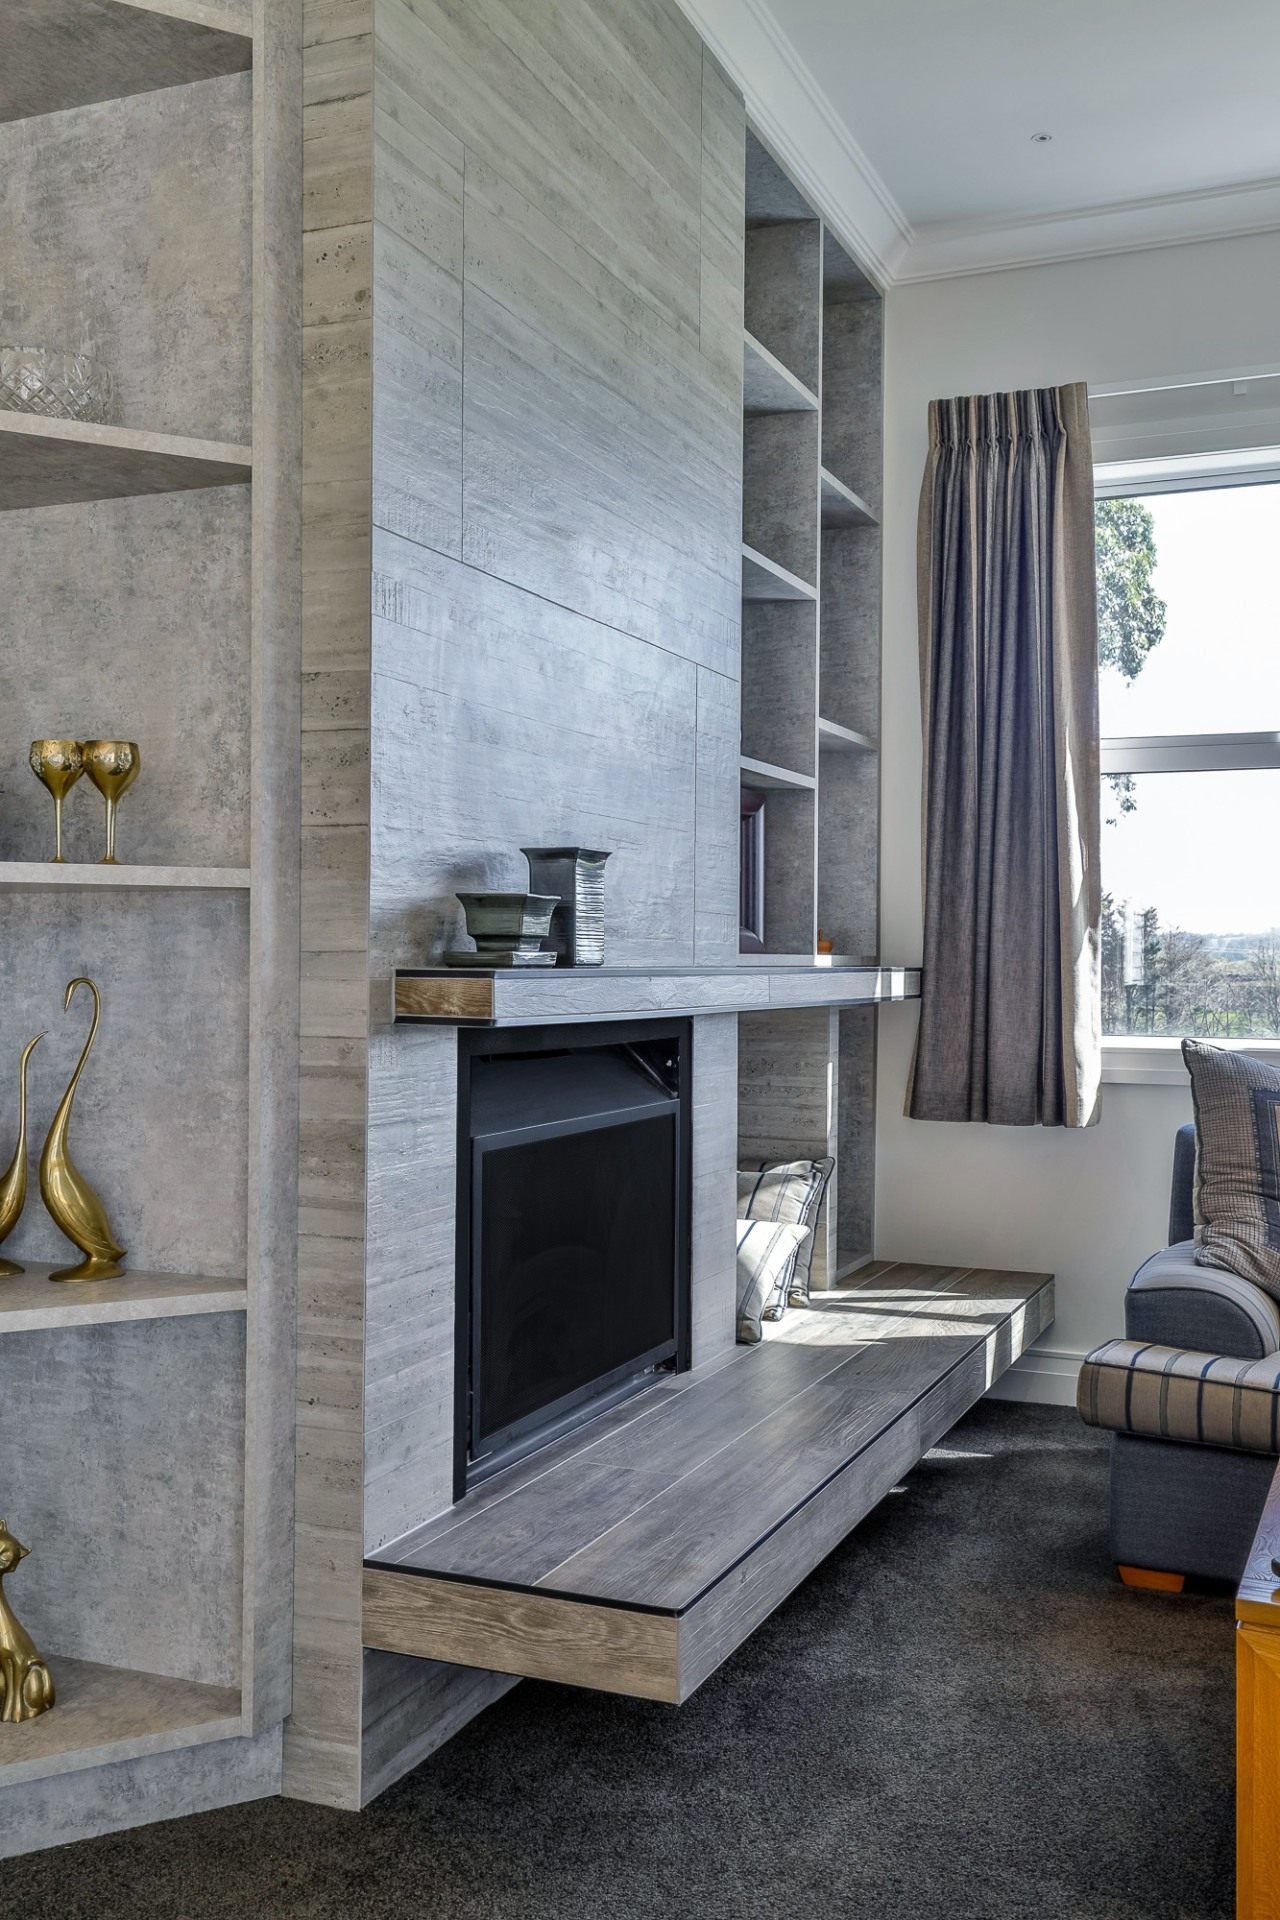 The home's interior is more contemporary but with